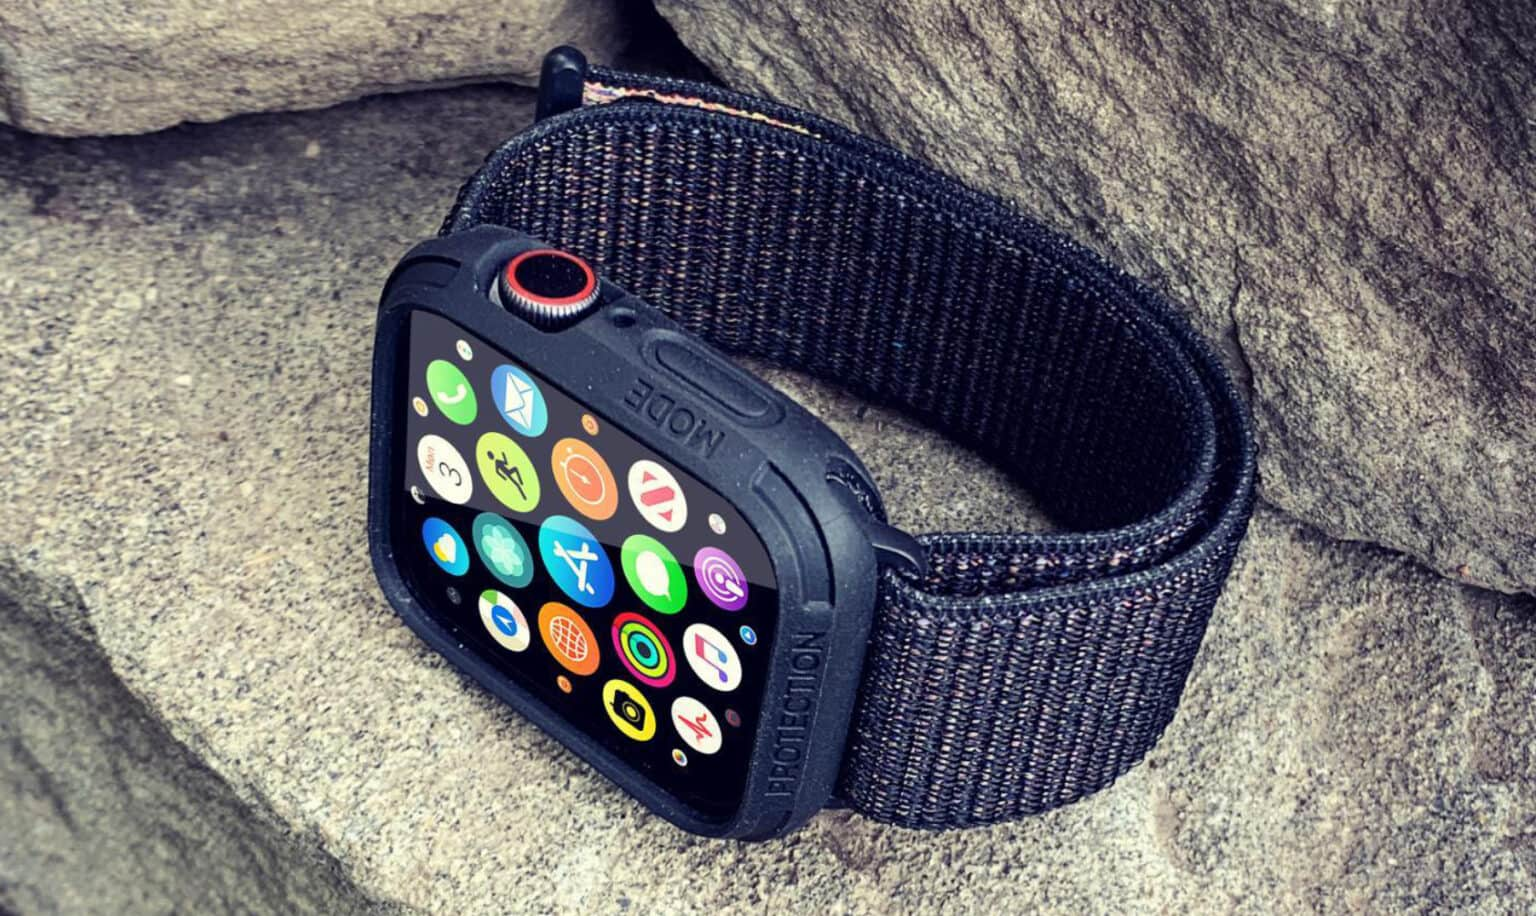 Elkson bumper for Apple Watch